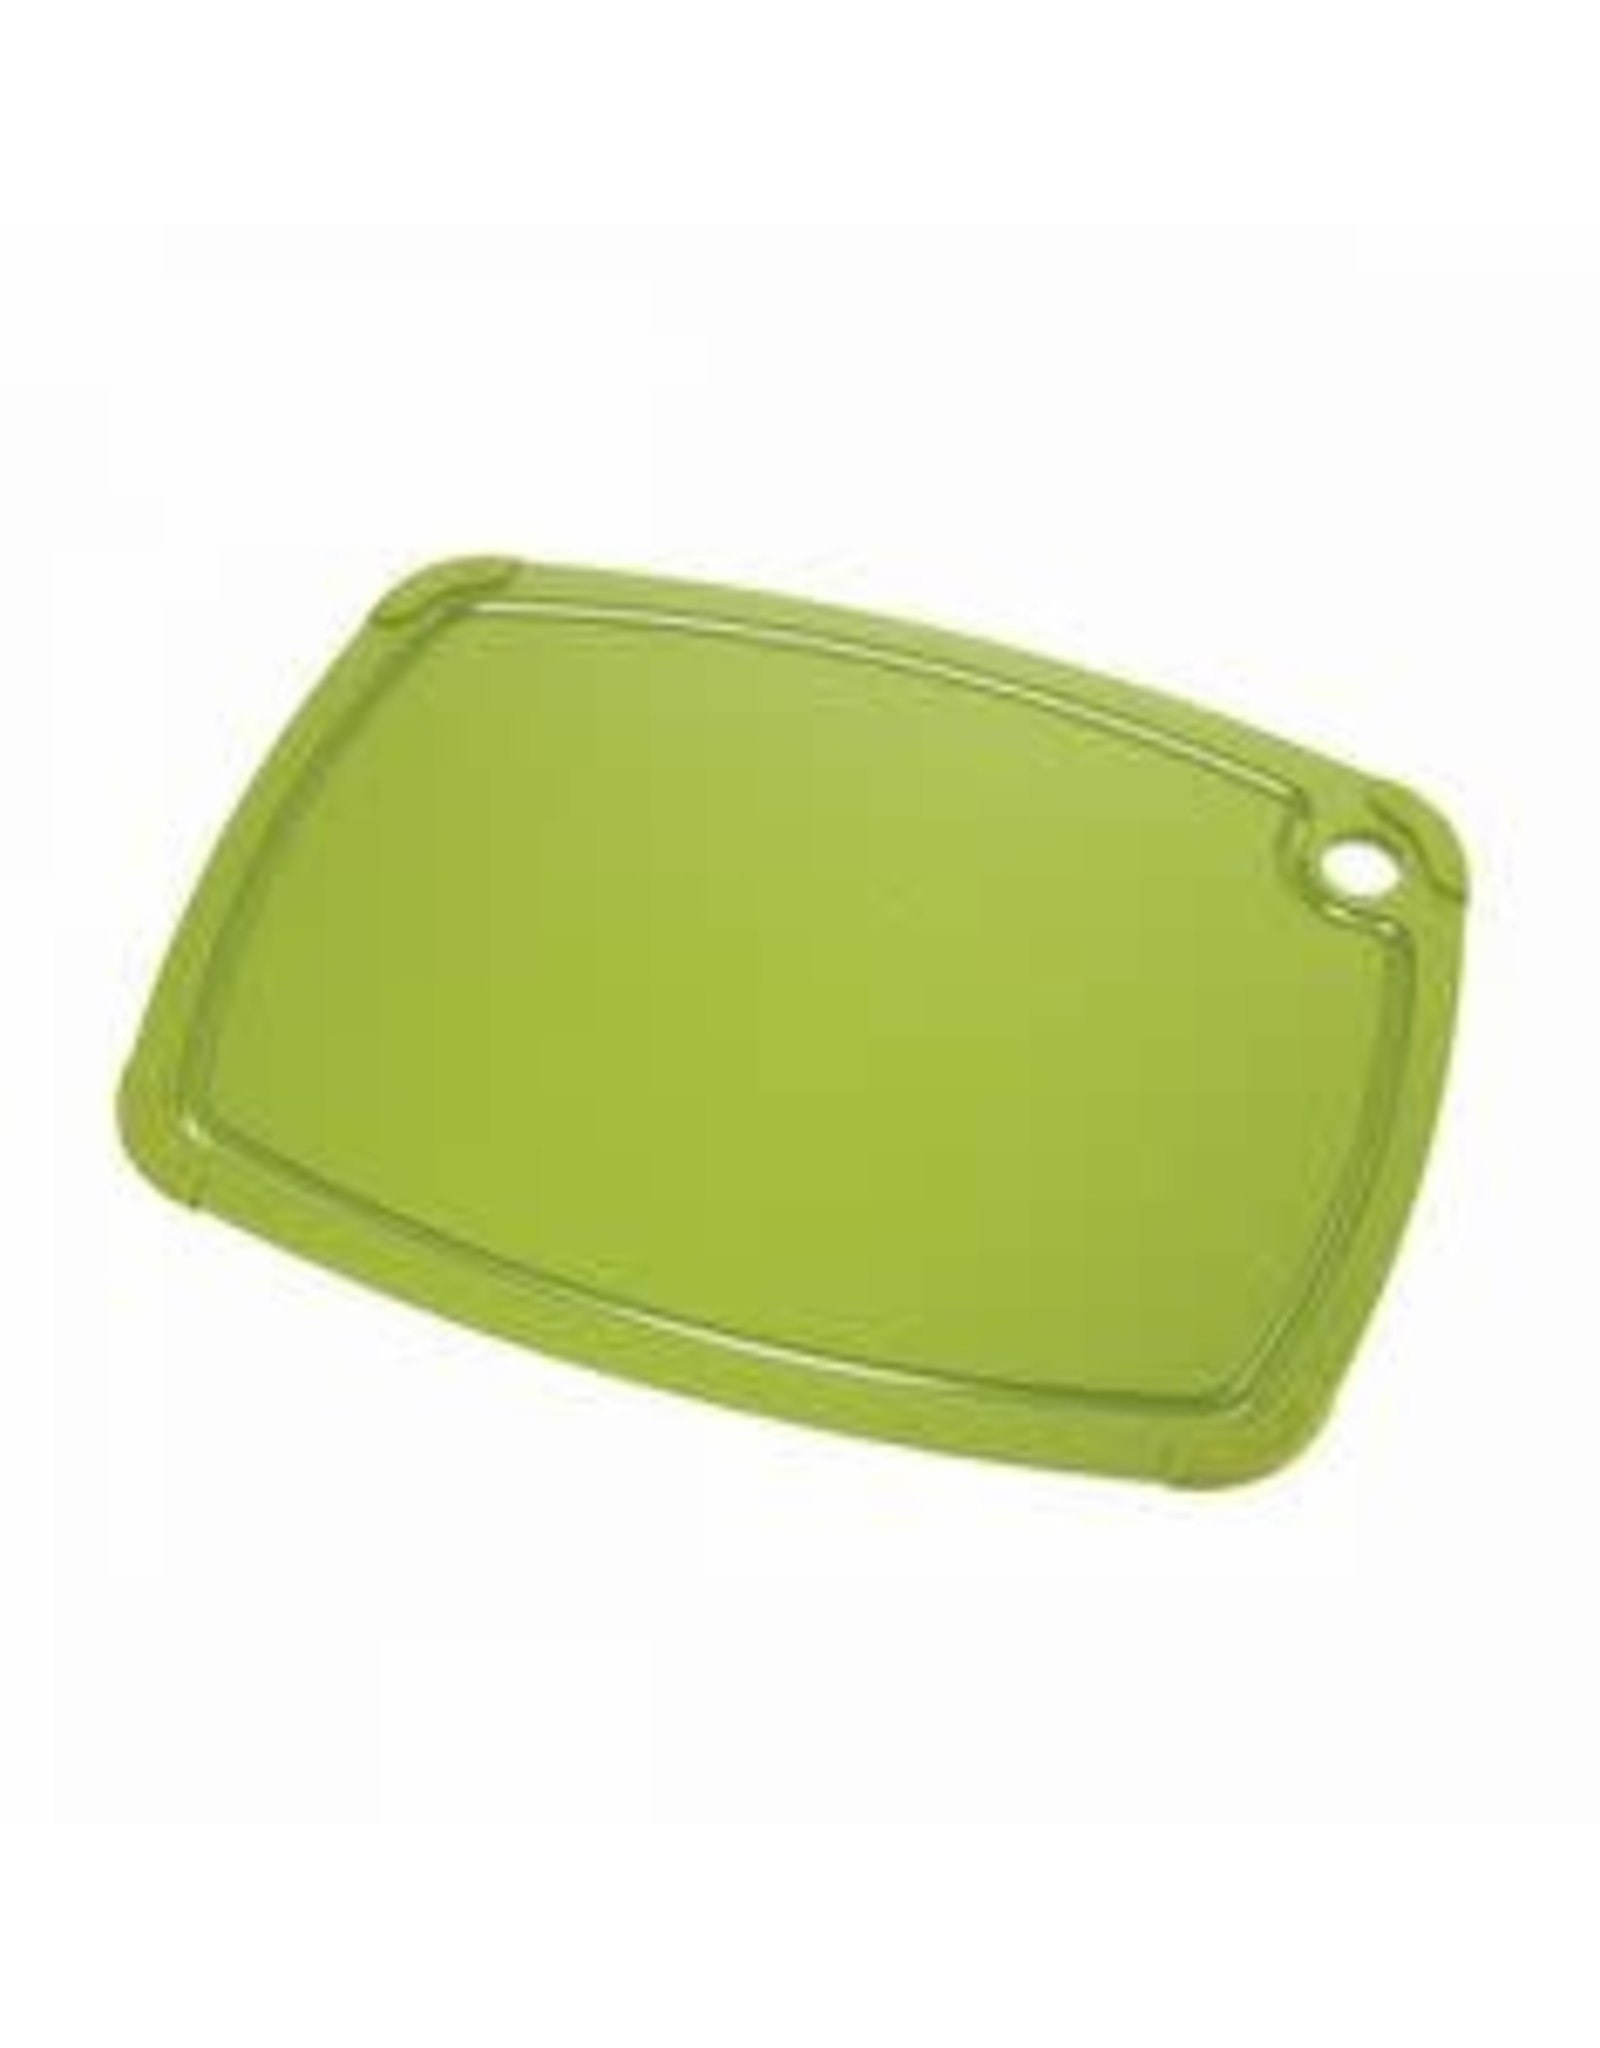 "Epicurean Epicurean NS Poly Cutting board 14.5""x 11.25"" Green"